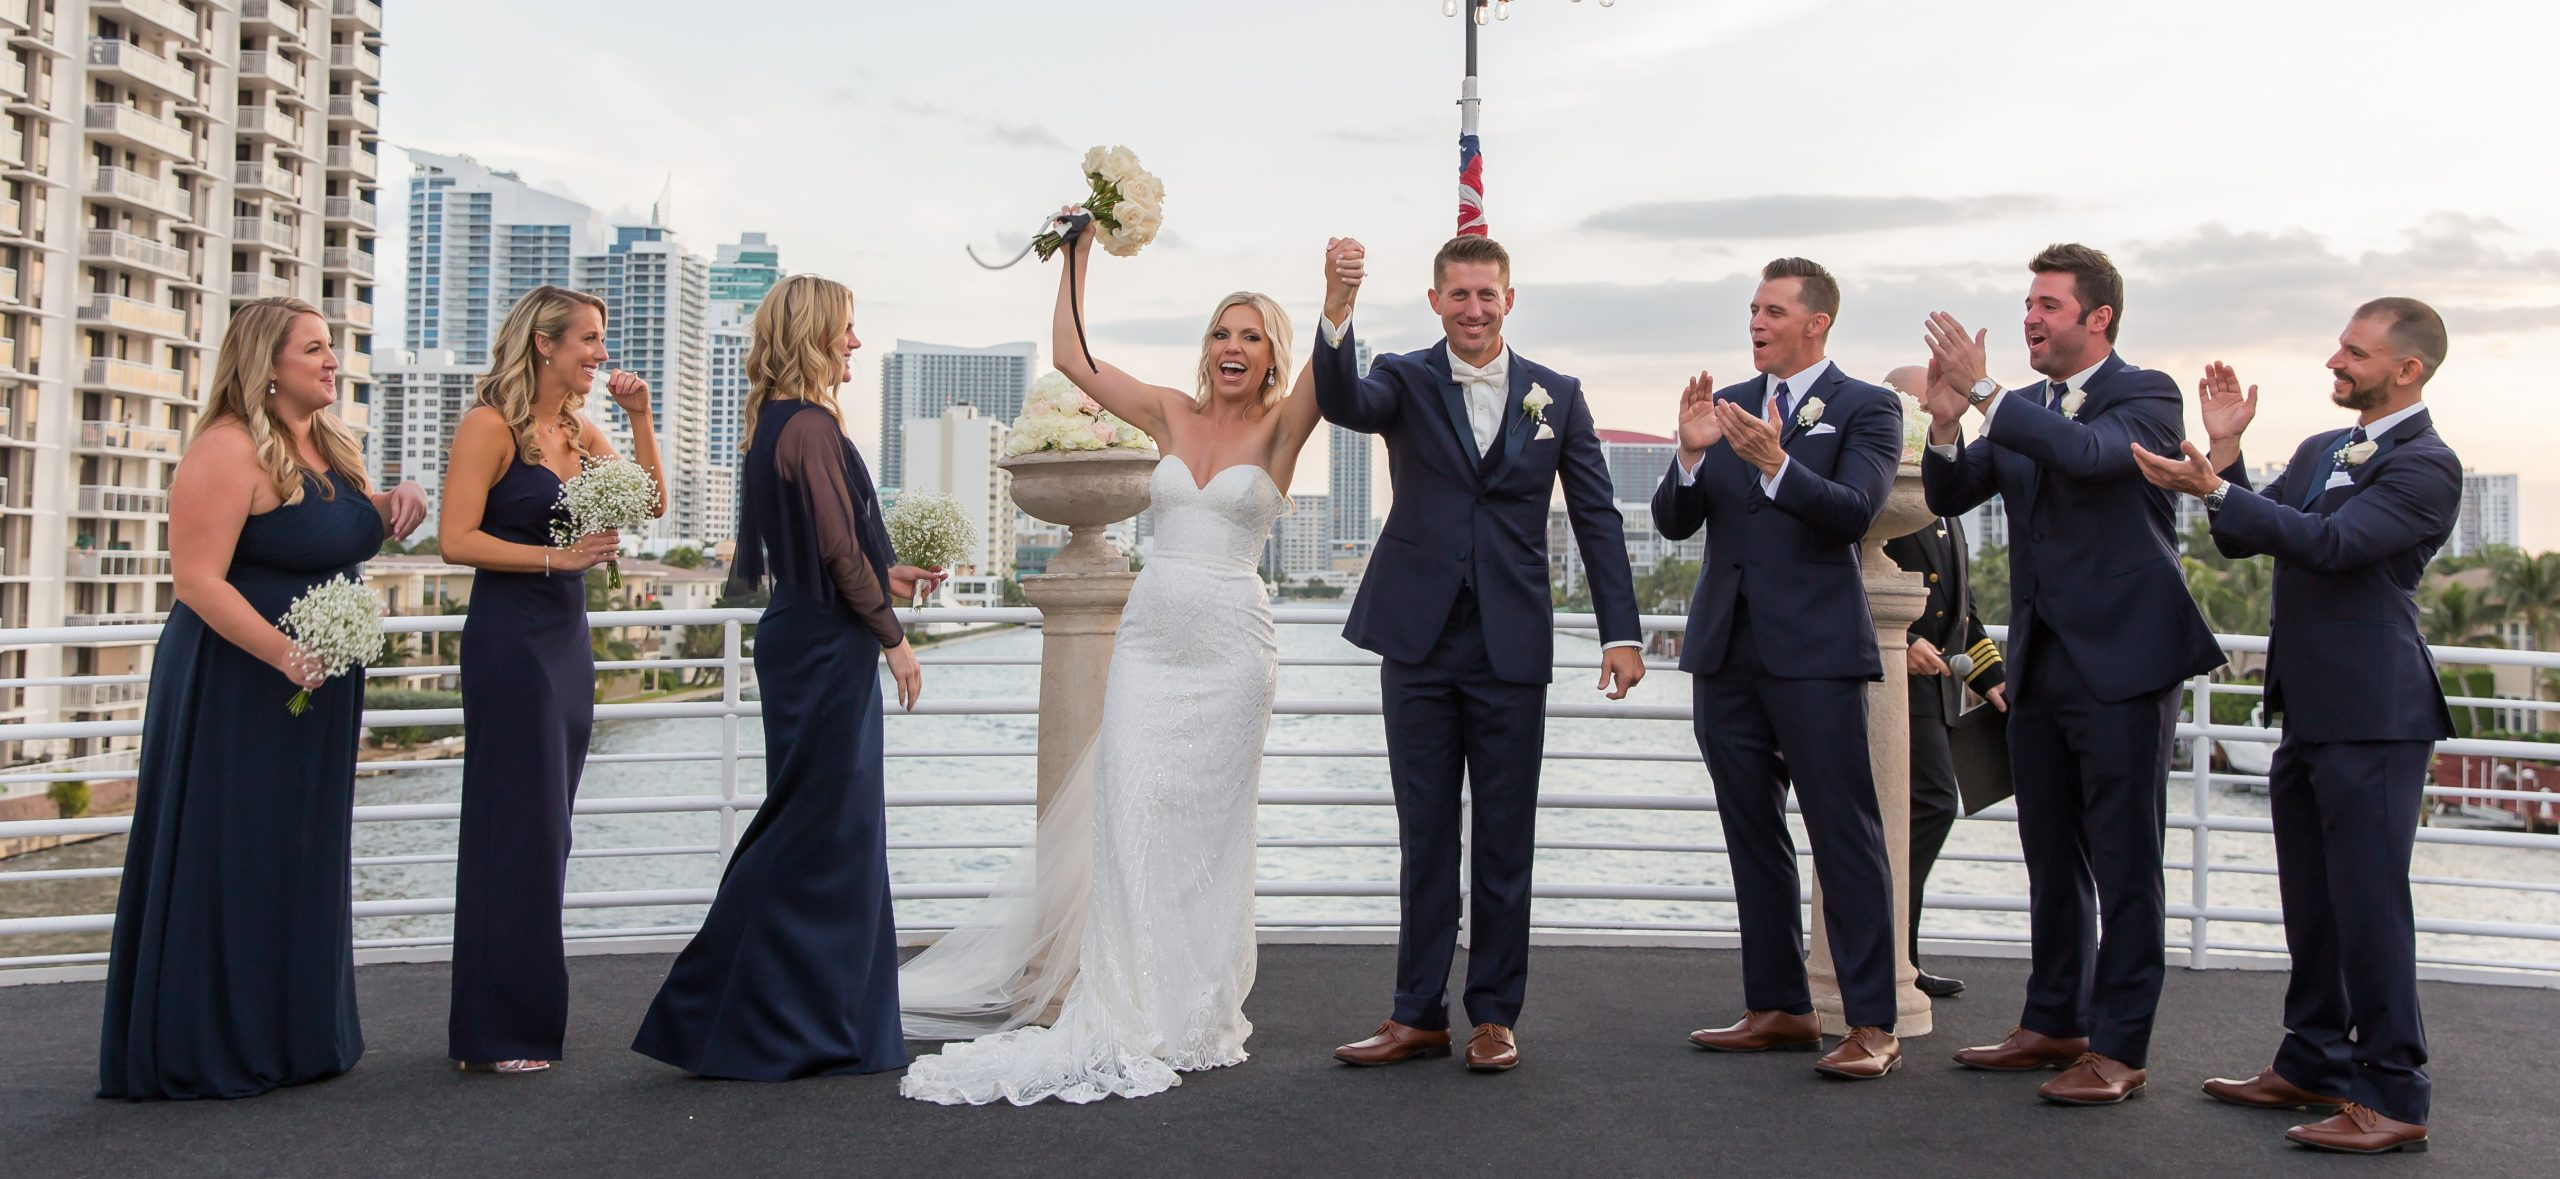 Affordable Yacht Wedding Options in South Florida